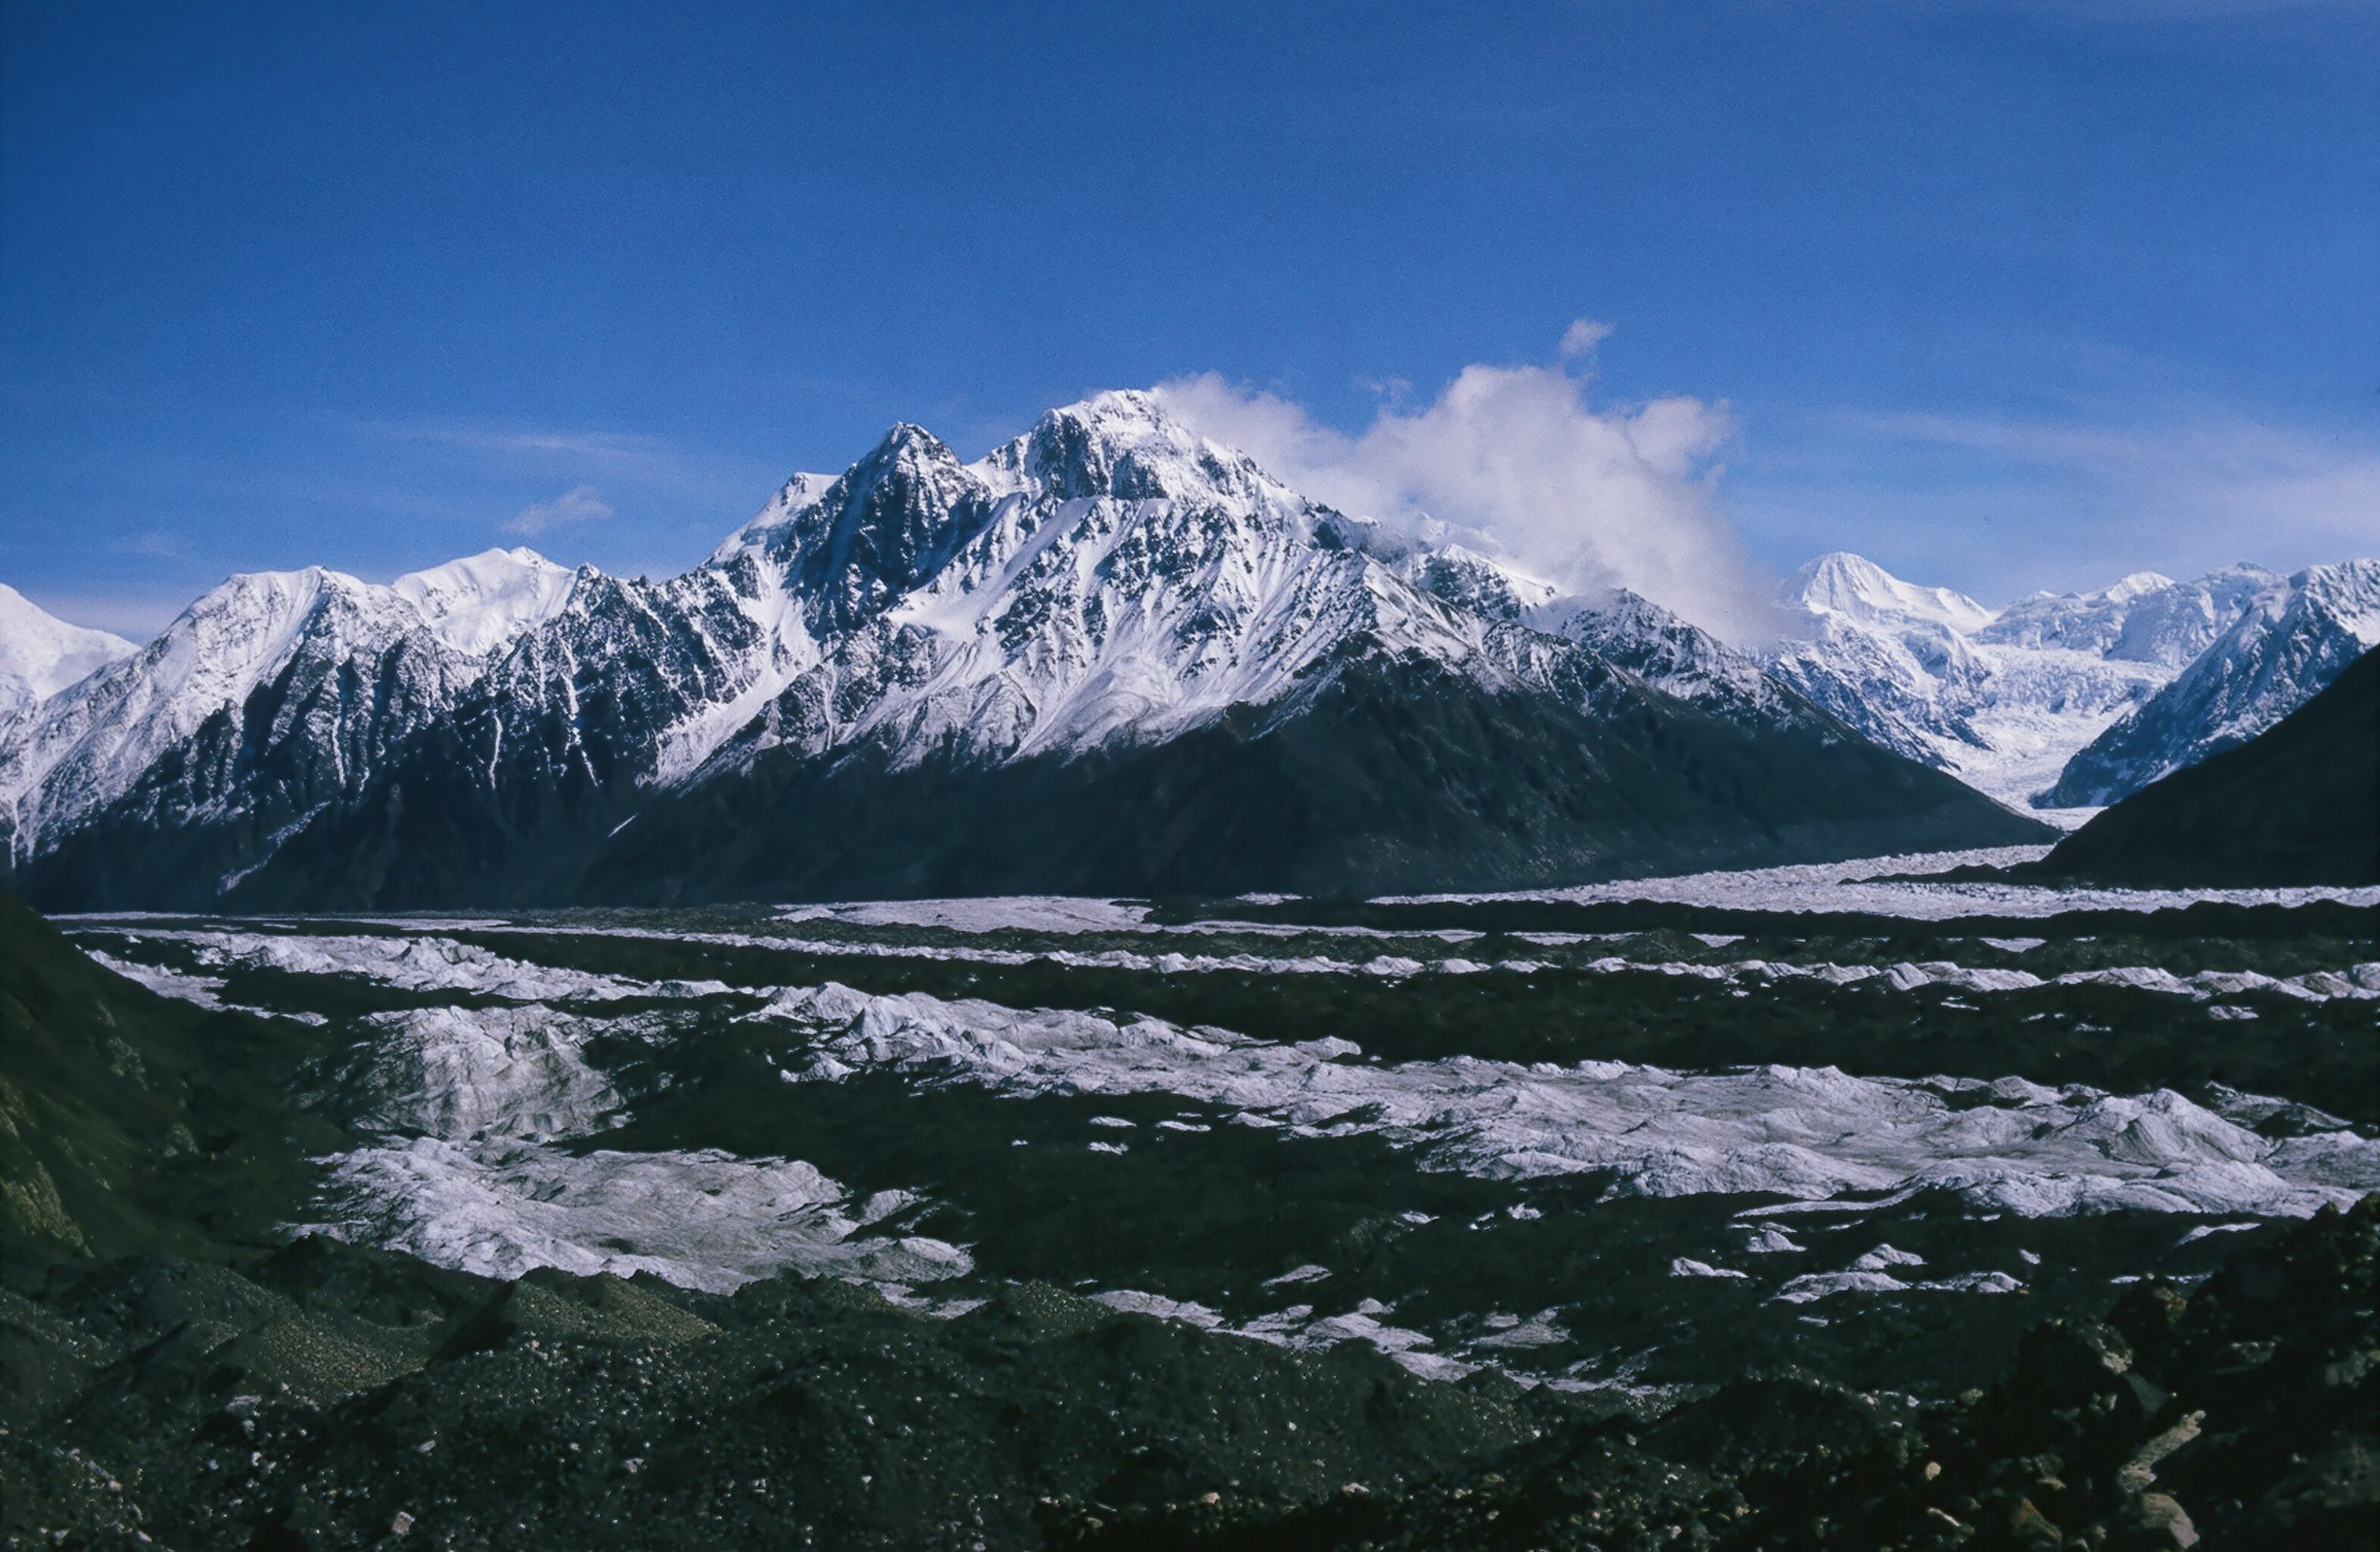 The majestic Wrangell Mountains in glacier country.